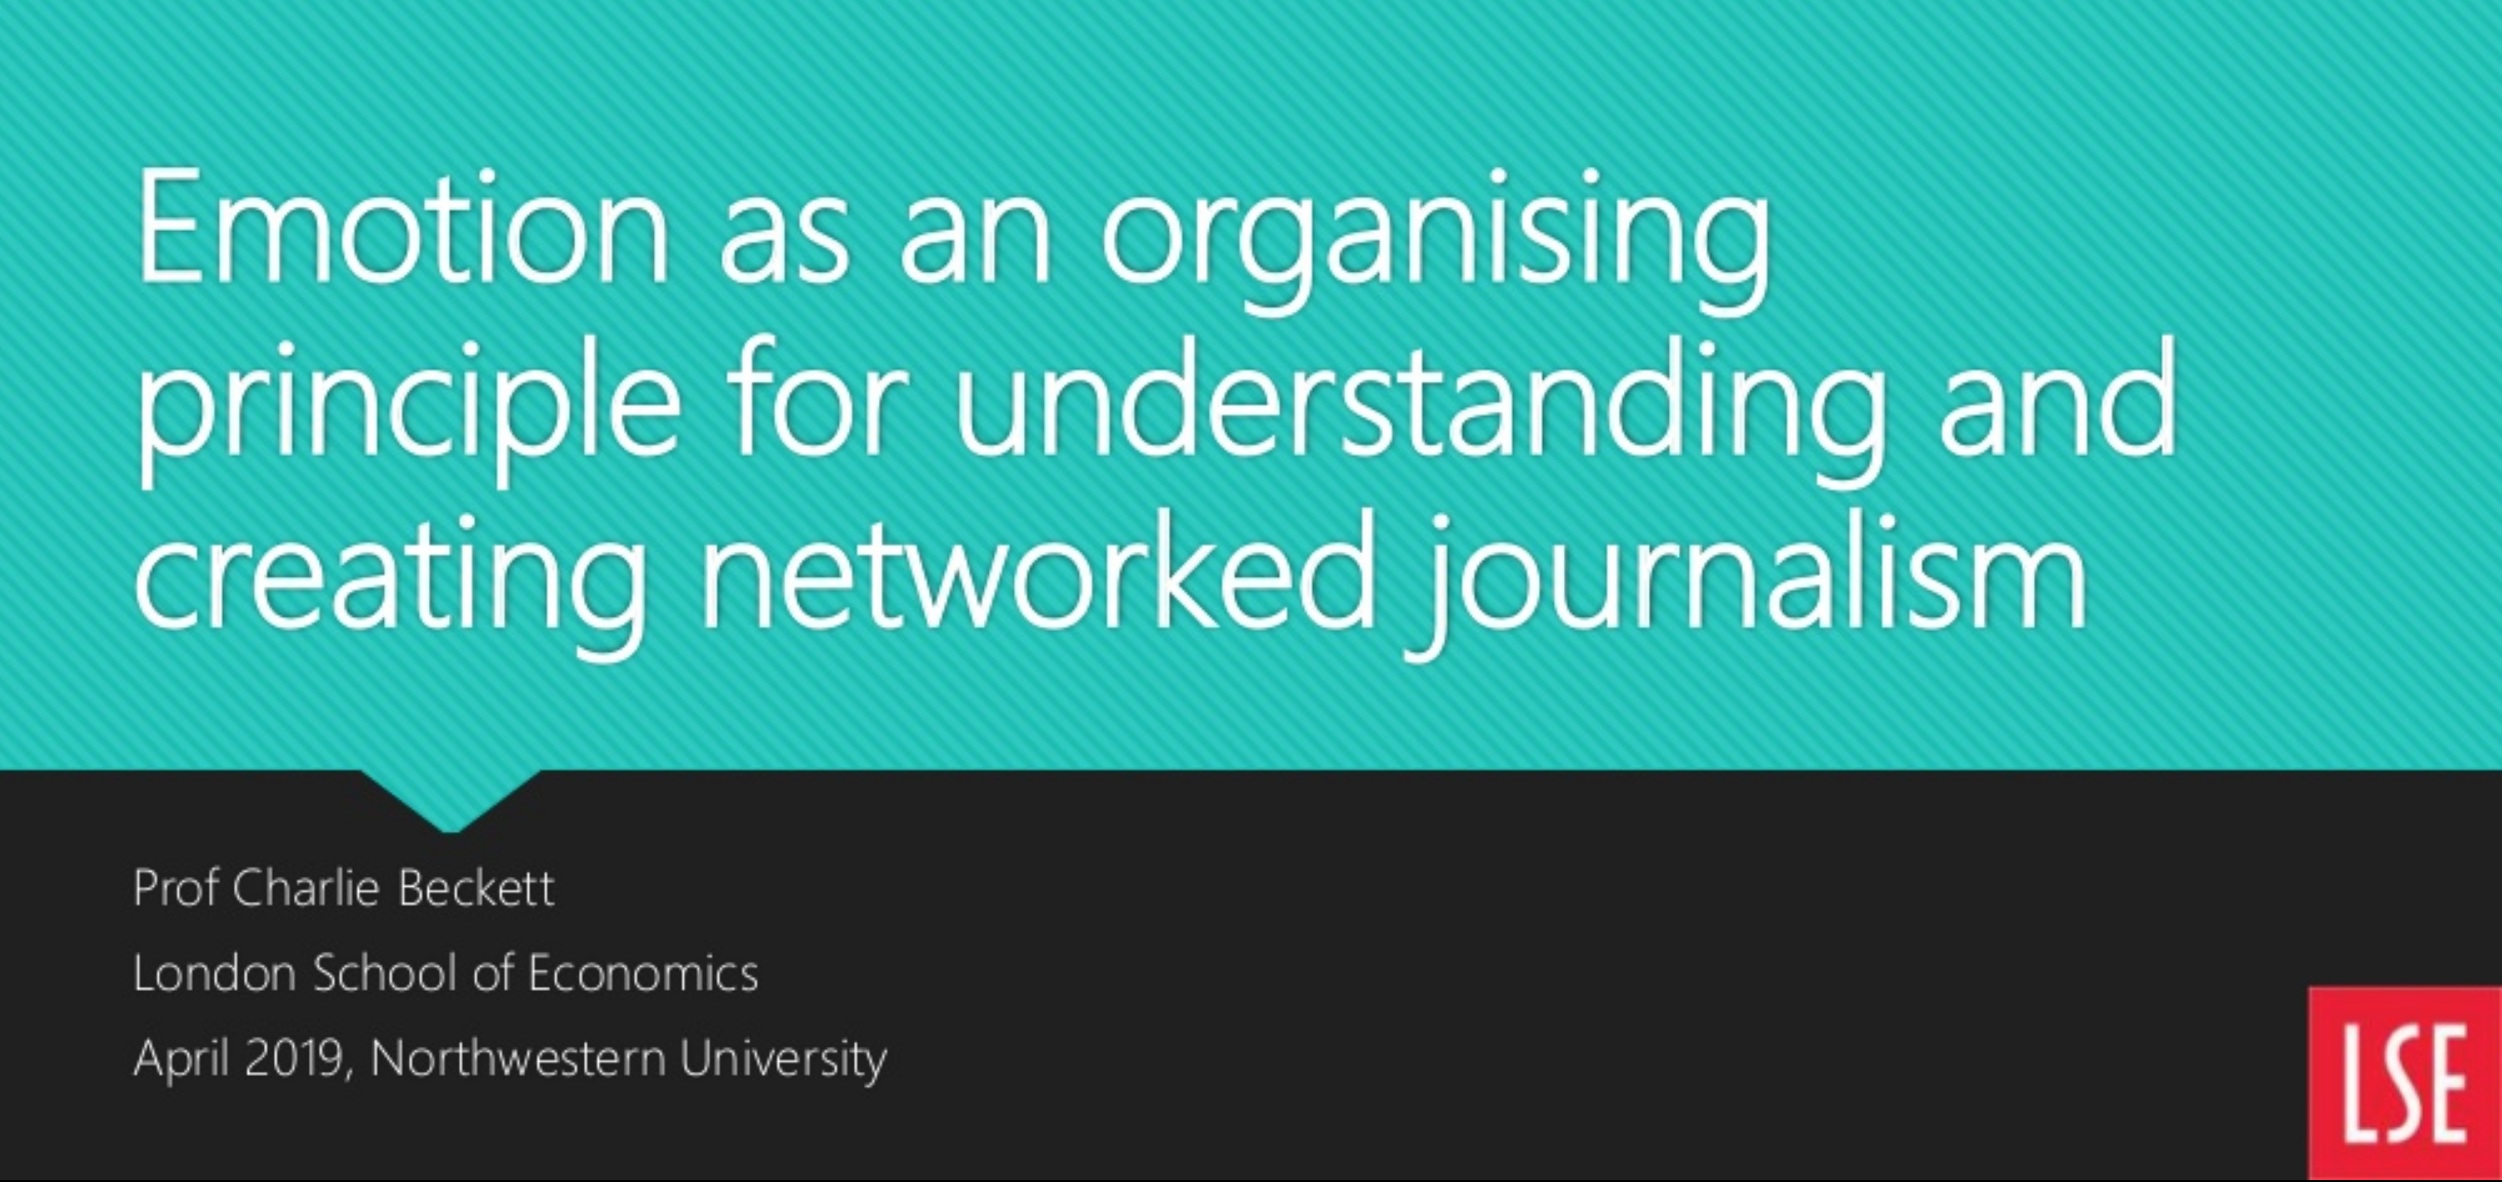 Emotion as an organising principle for networked journalism | Polis